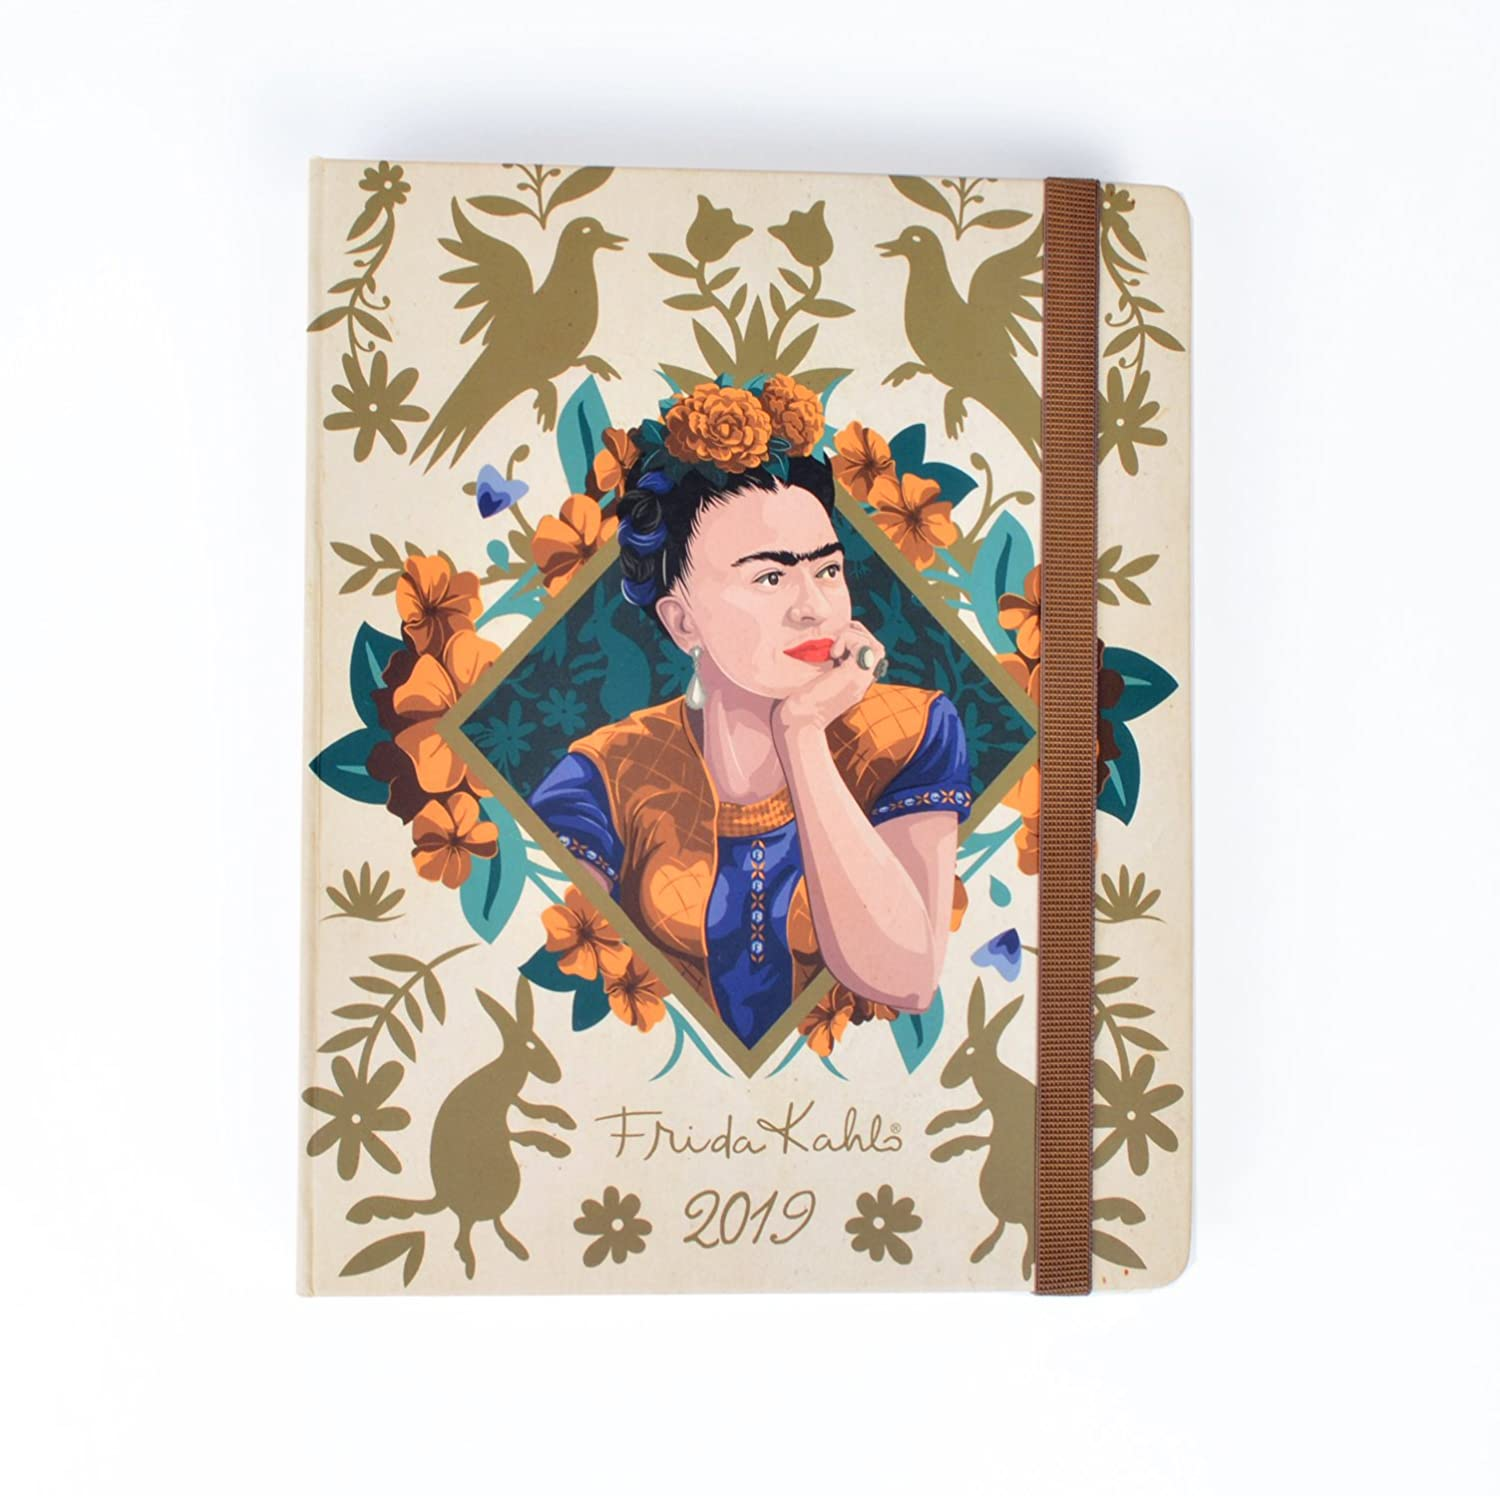 Frida Kahlo Weekly Planner, Yearly Planner and Daily Planner, 16-Month Form Sept-18 to Dec-19, Organizer, Calendar and Agenda, 6.3 x 8 6.3 x 8 Erik Group ASVP1804